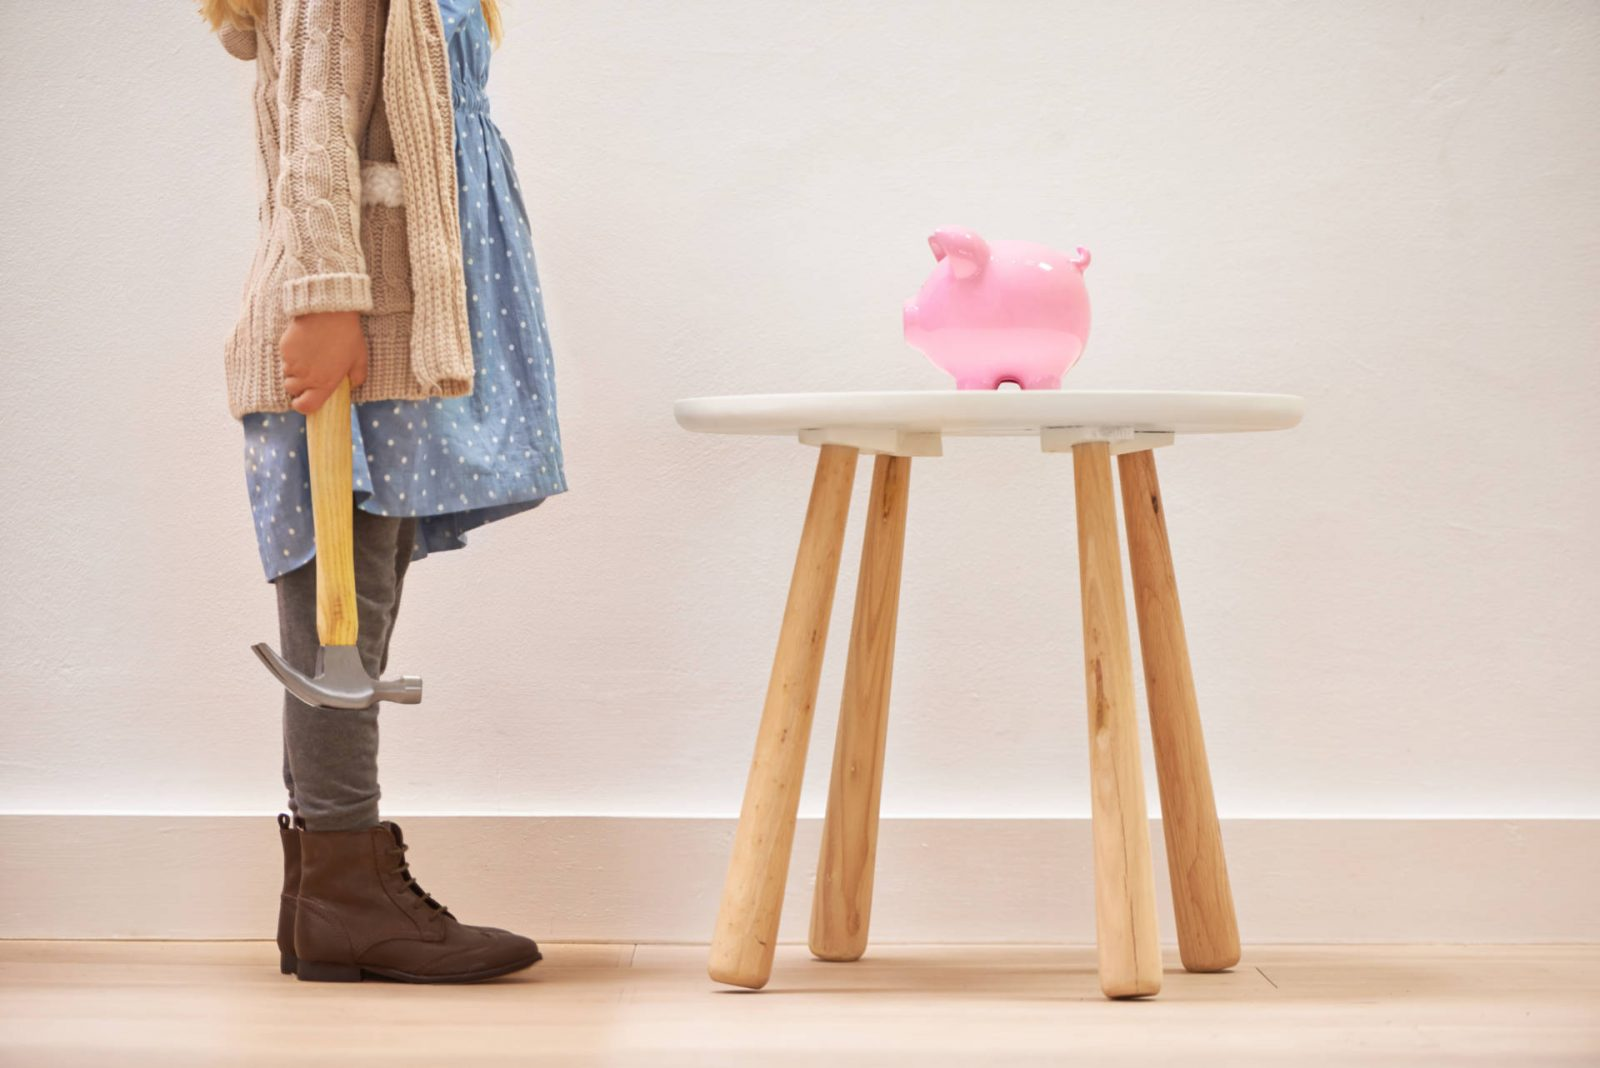 5 simple ways to teach your children about savings